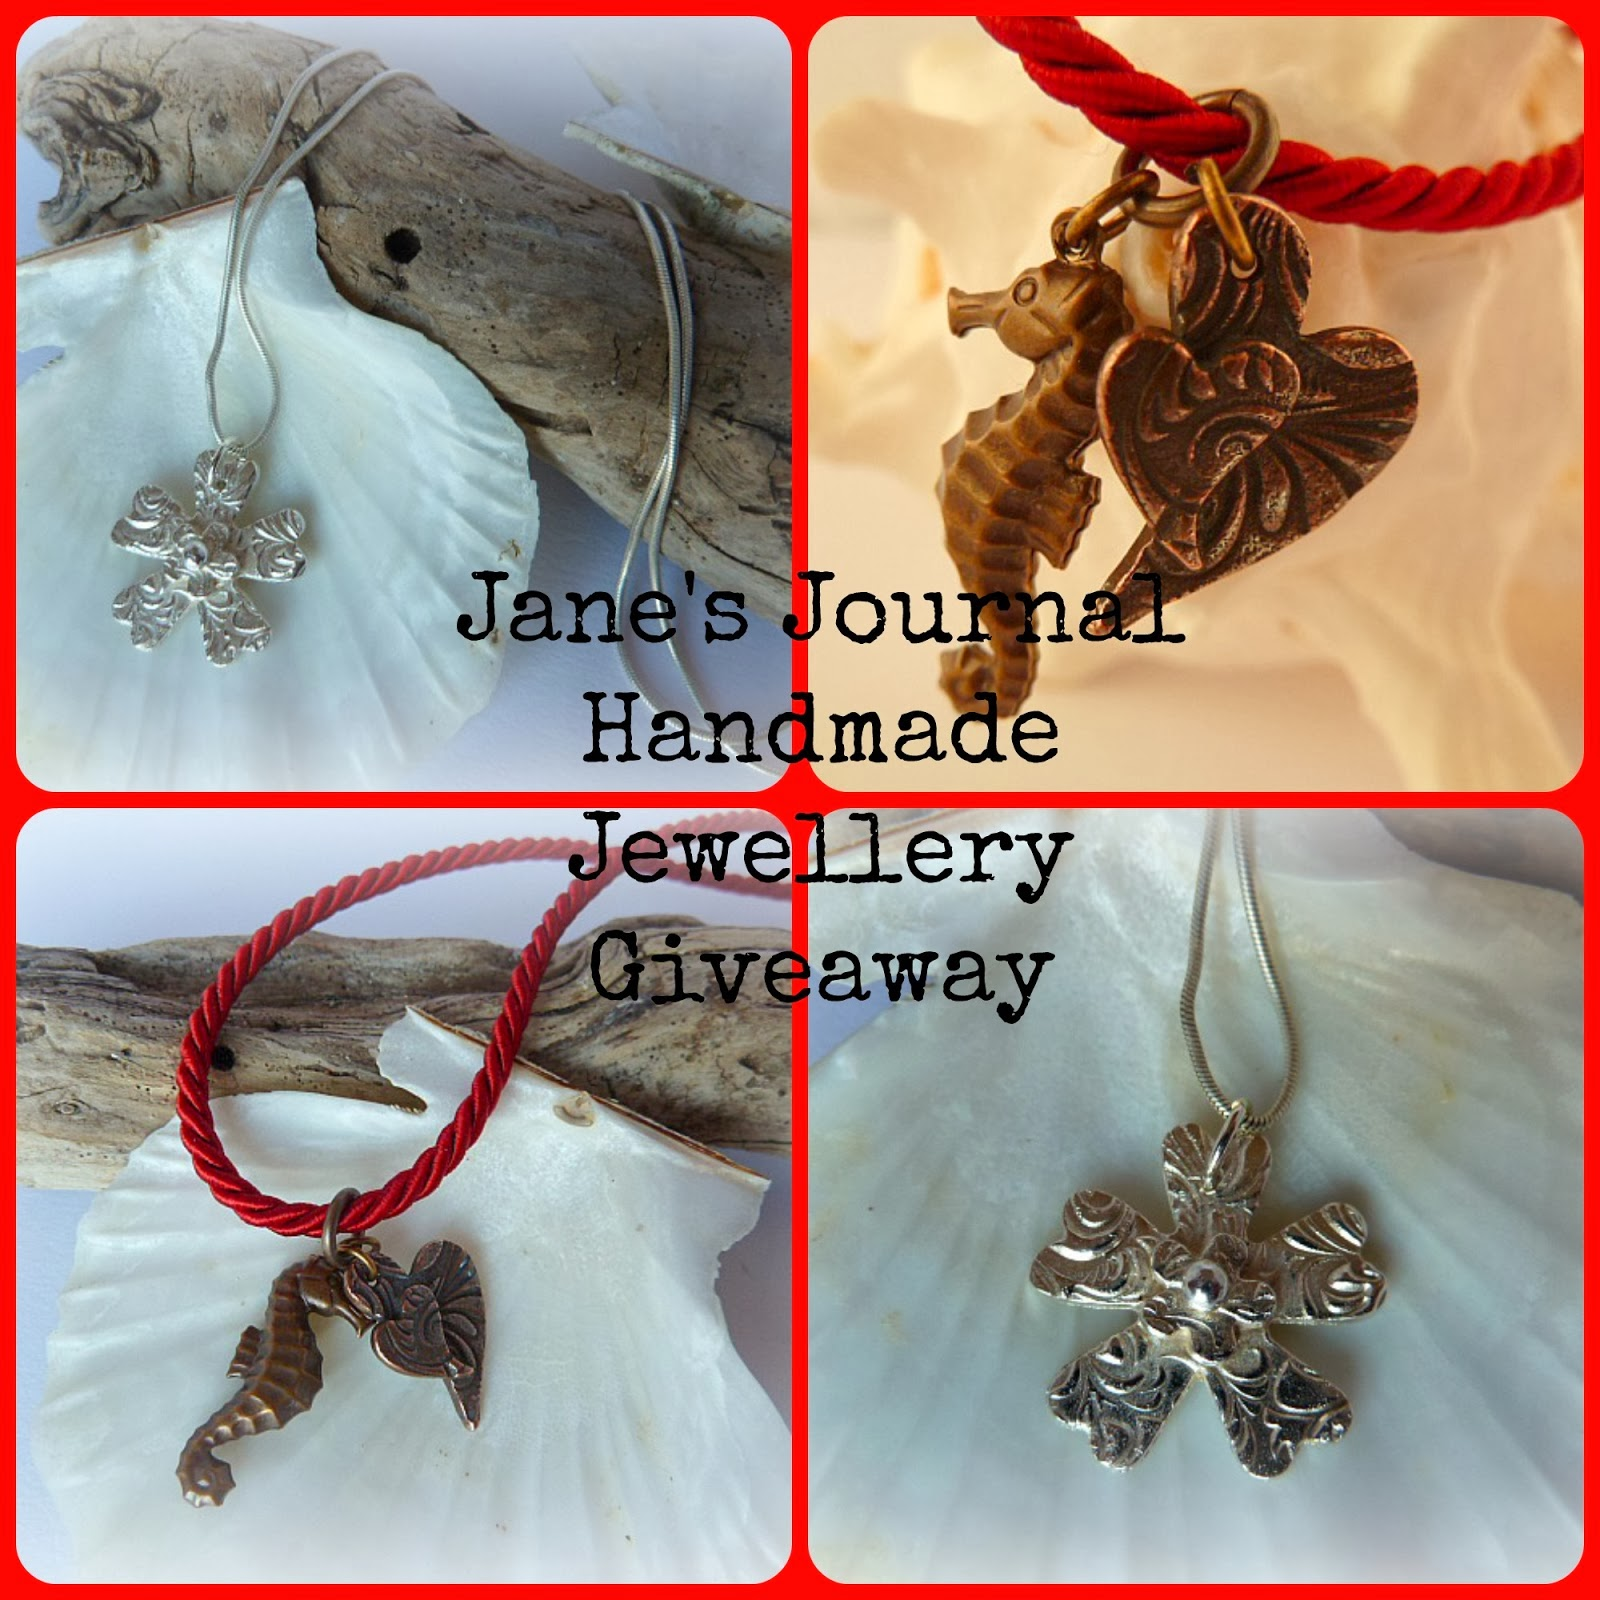 Jane's wonderful giveaway